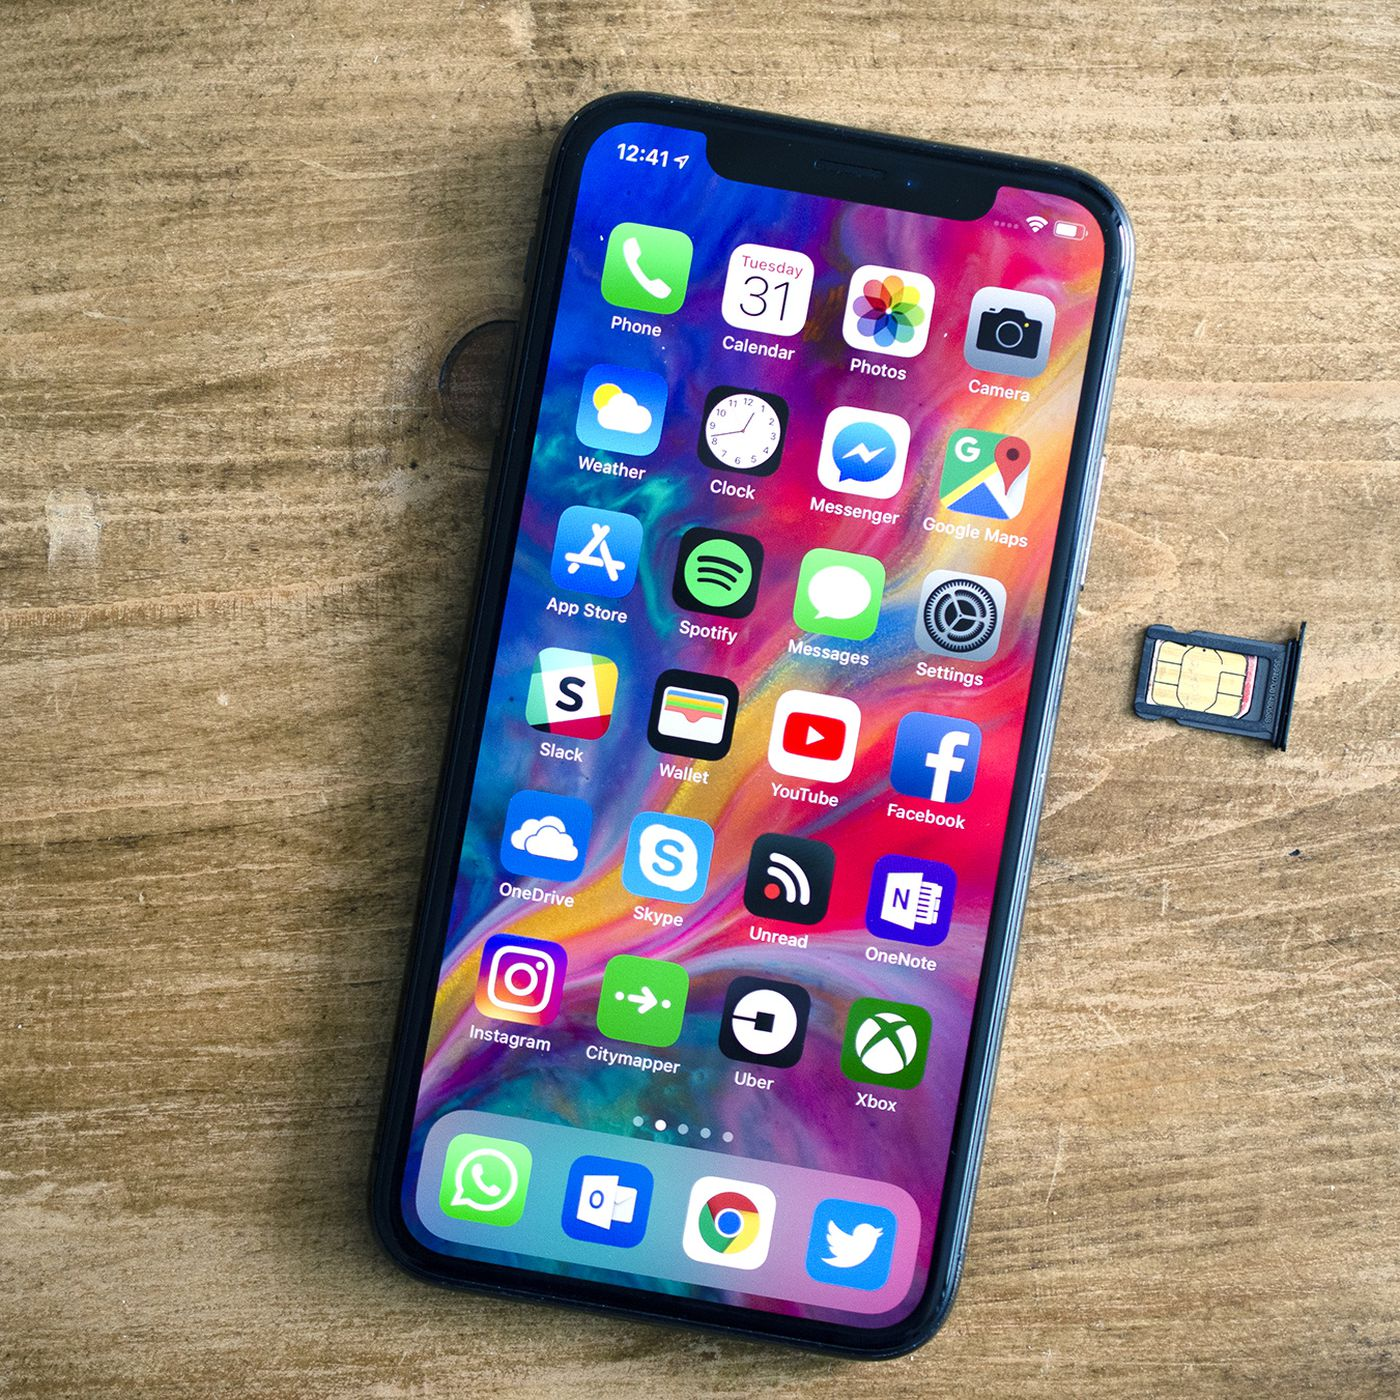 Apple's new iPhones use eSIM technology, but only ten